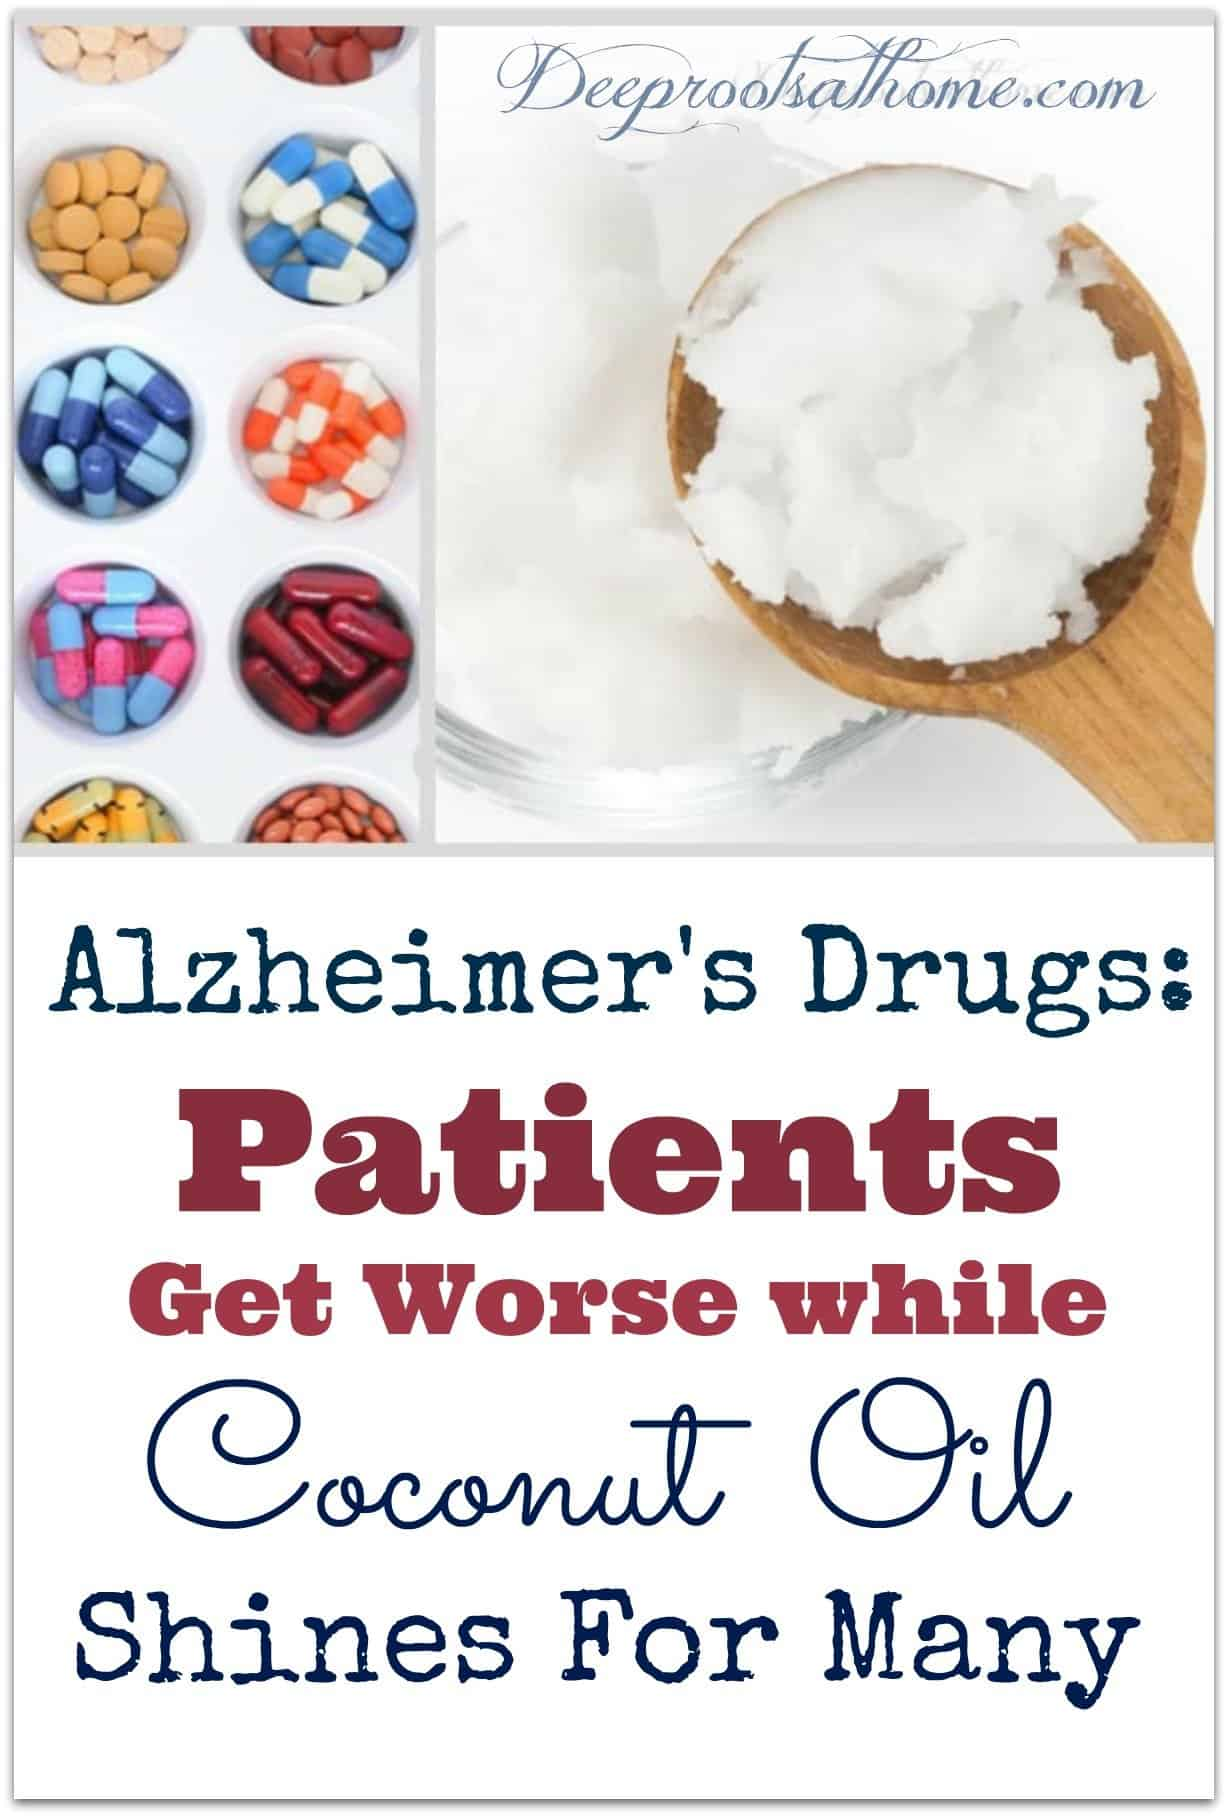 Alzheimer's Drugs Fall Short While Coconut Oil Shines For Many. Alzheimer's medications vs coconut oil